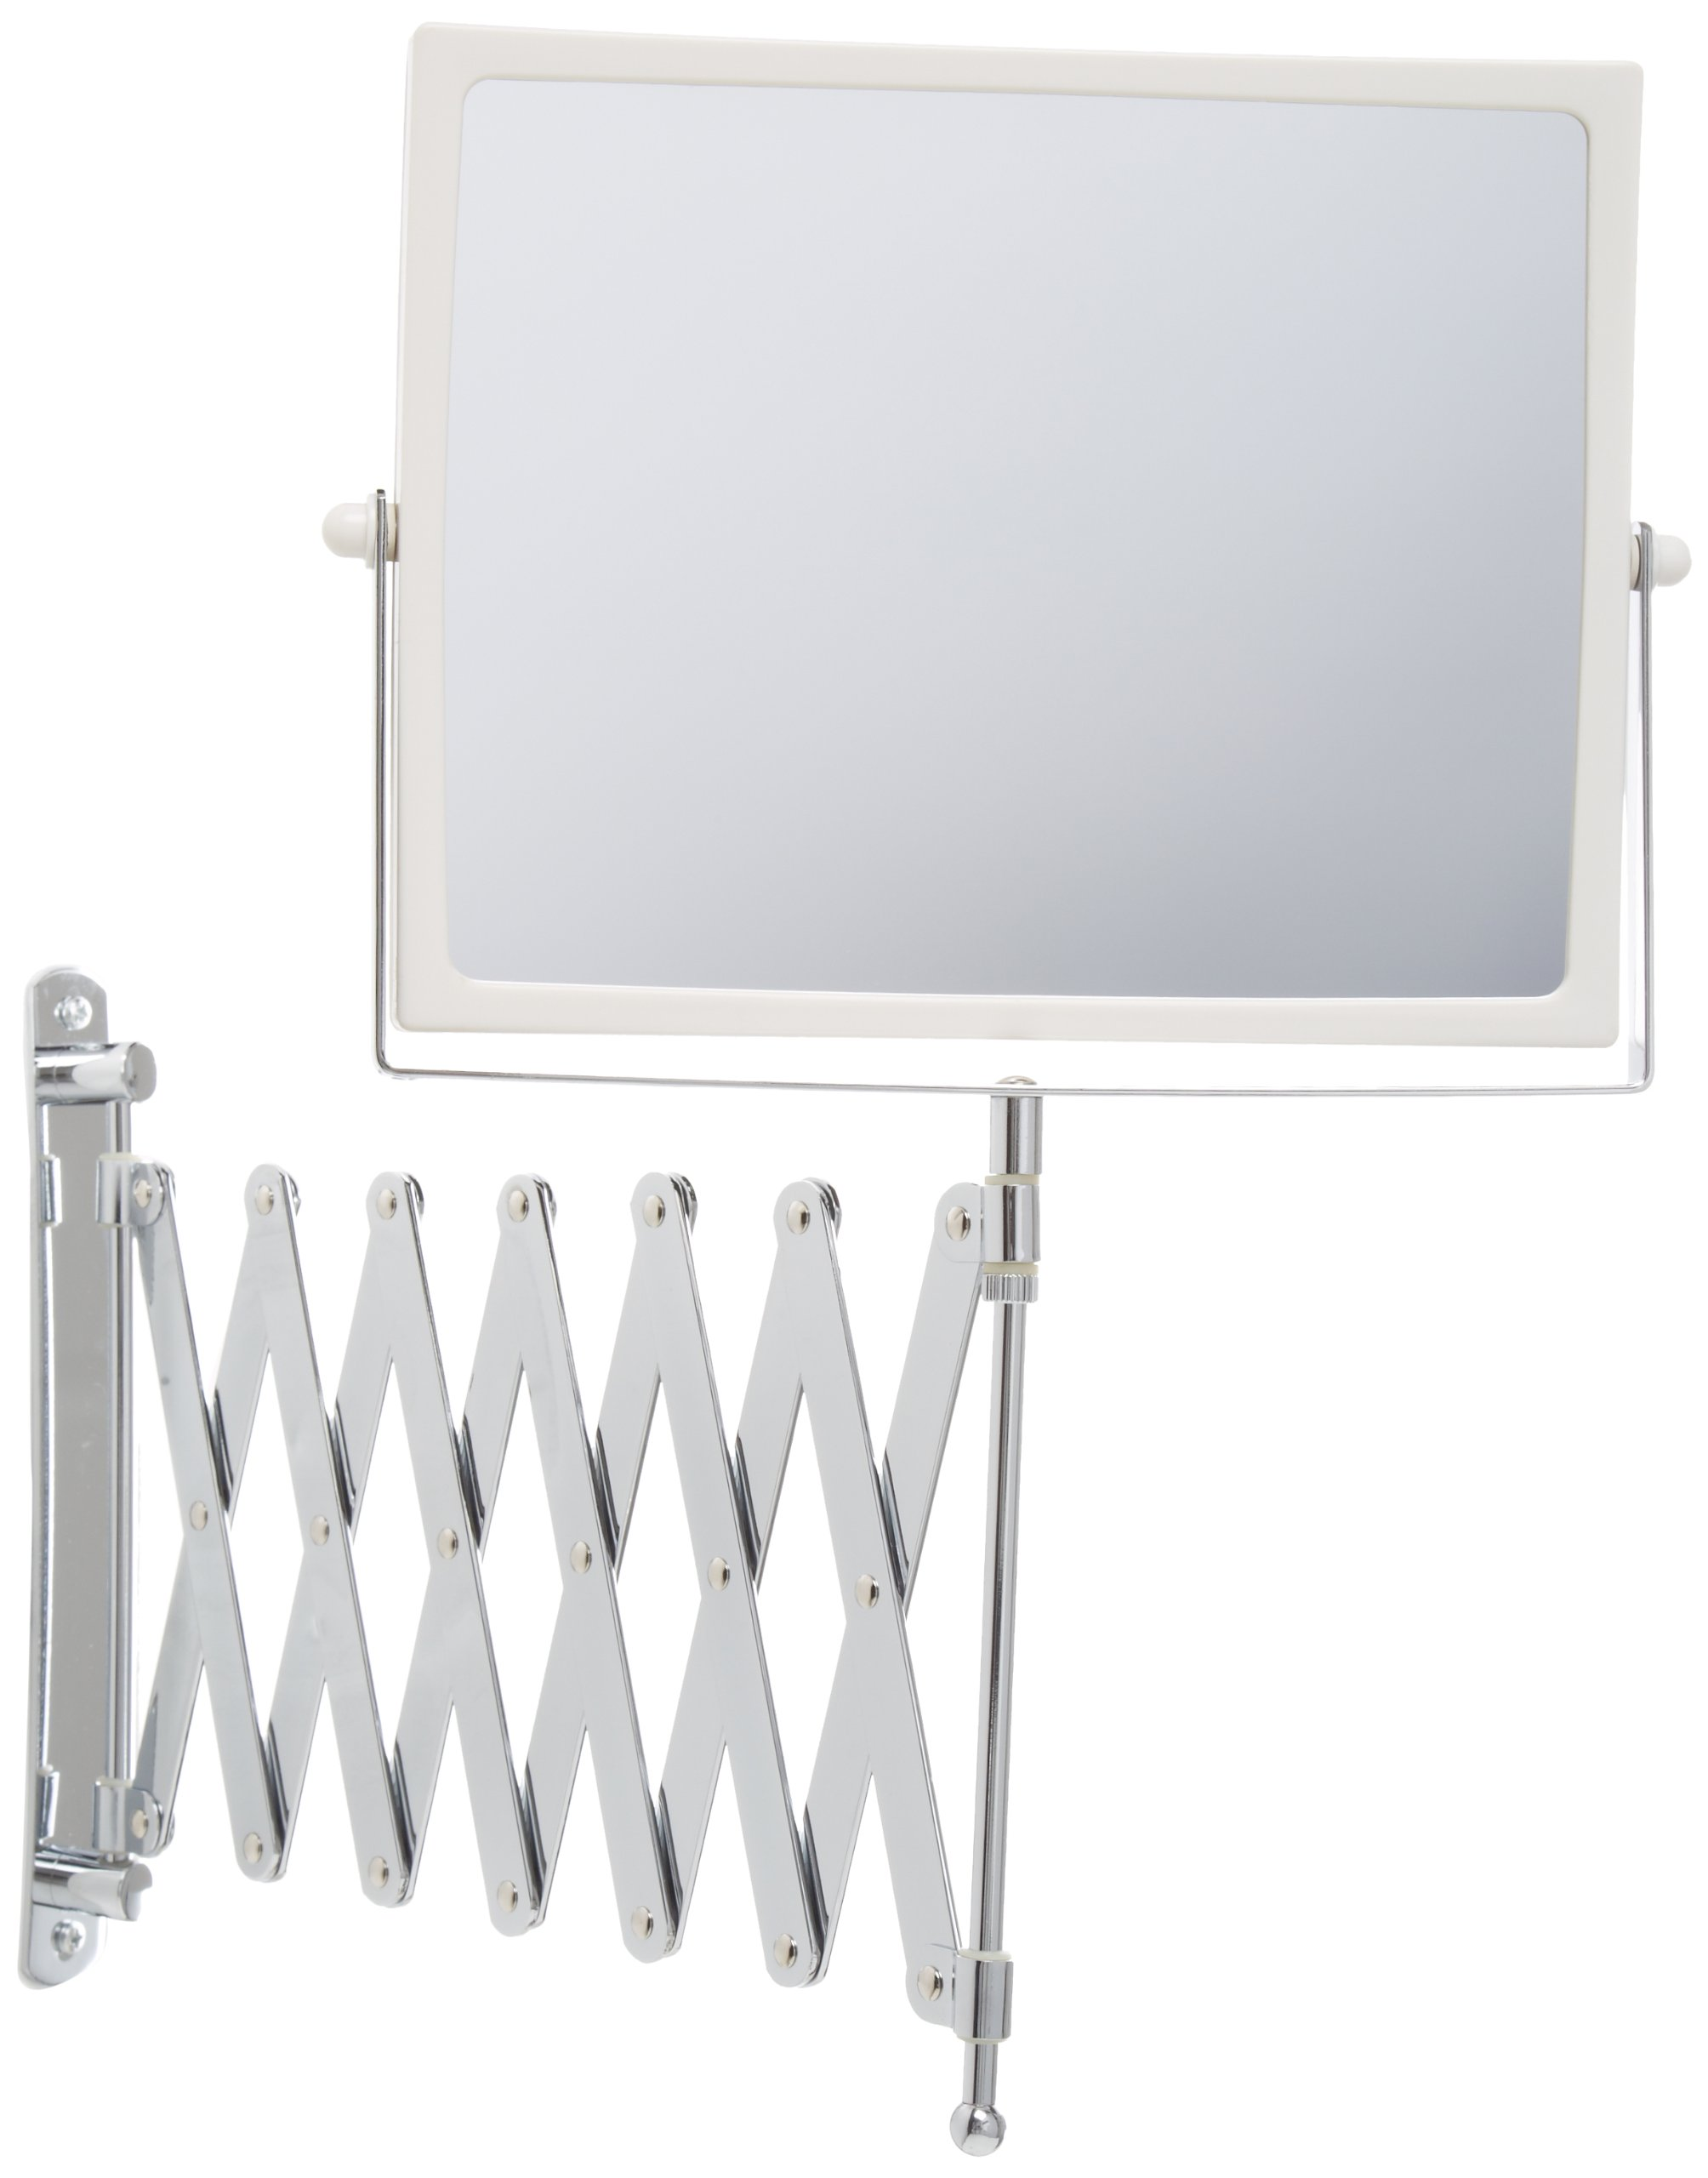 Amazon jerdon jp2027n 8 inch wall mount makeup mirror with 7x jerdon j2020c 83 inch two sided swivel wall mount mirror with 5x magnification amipublicfo Choice Image